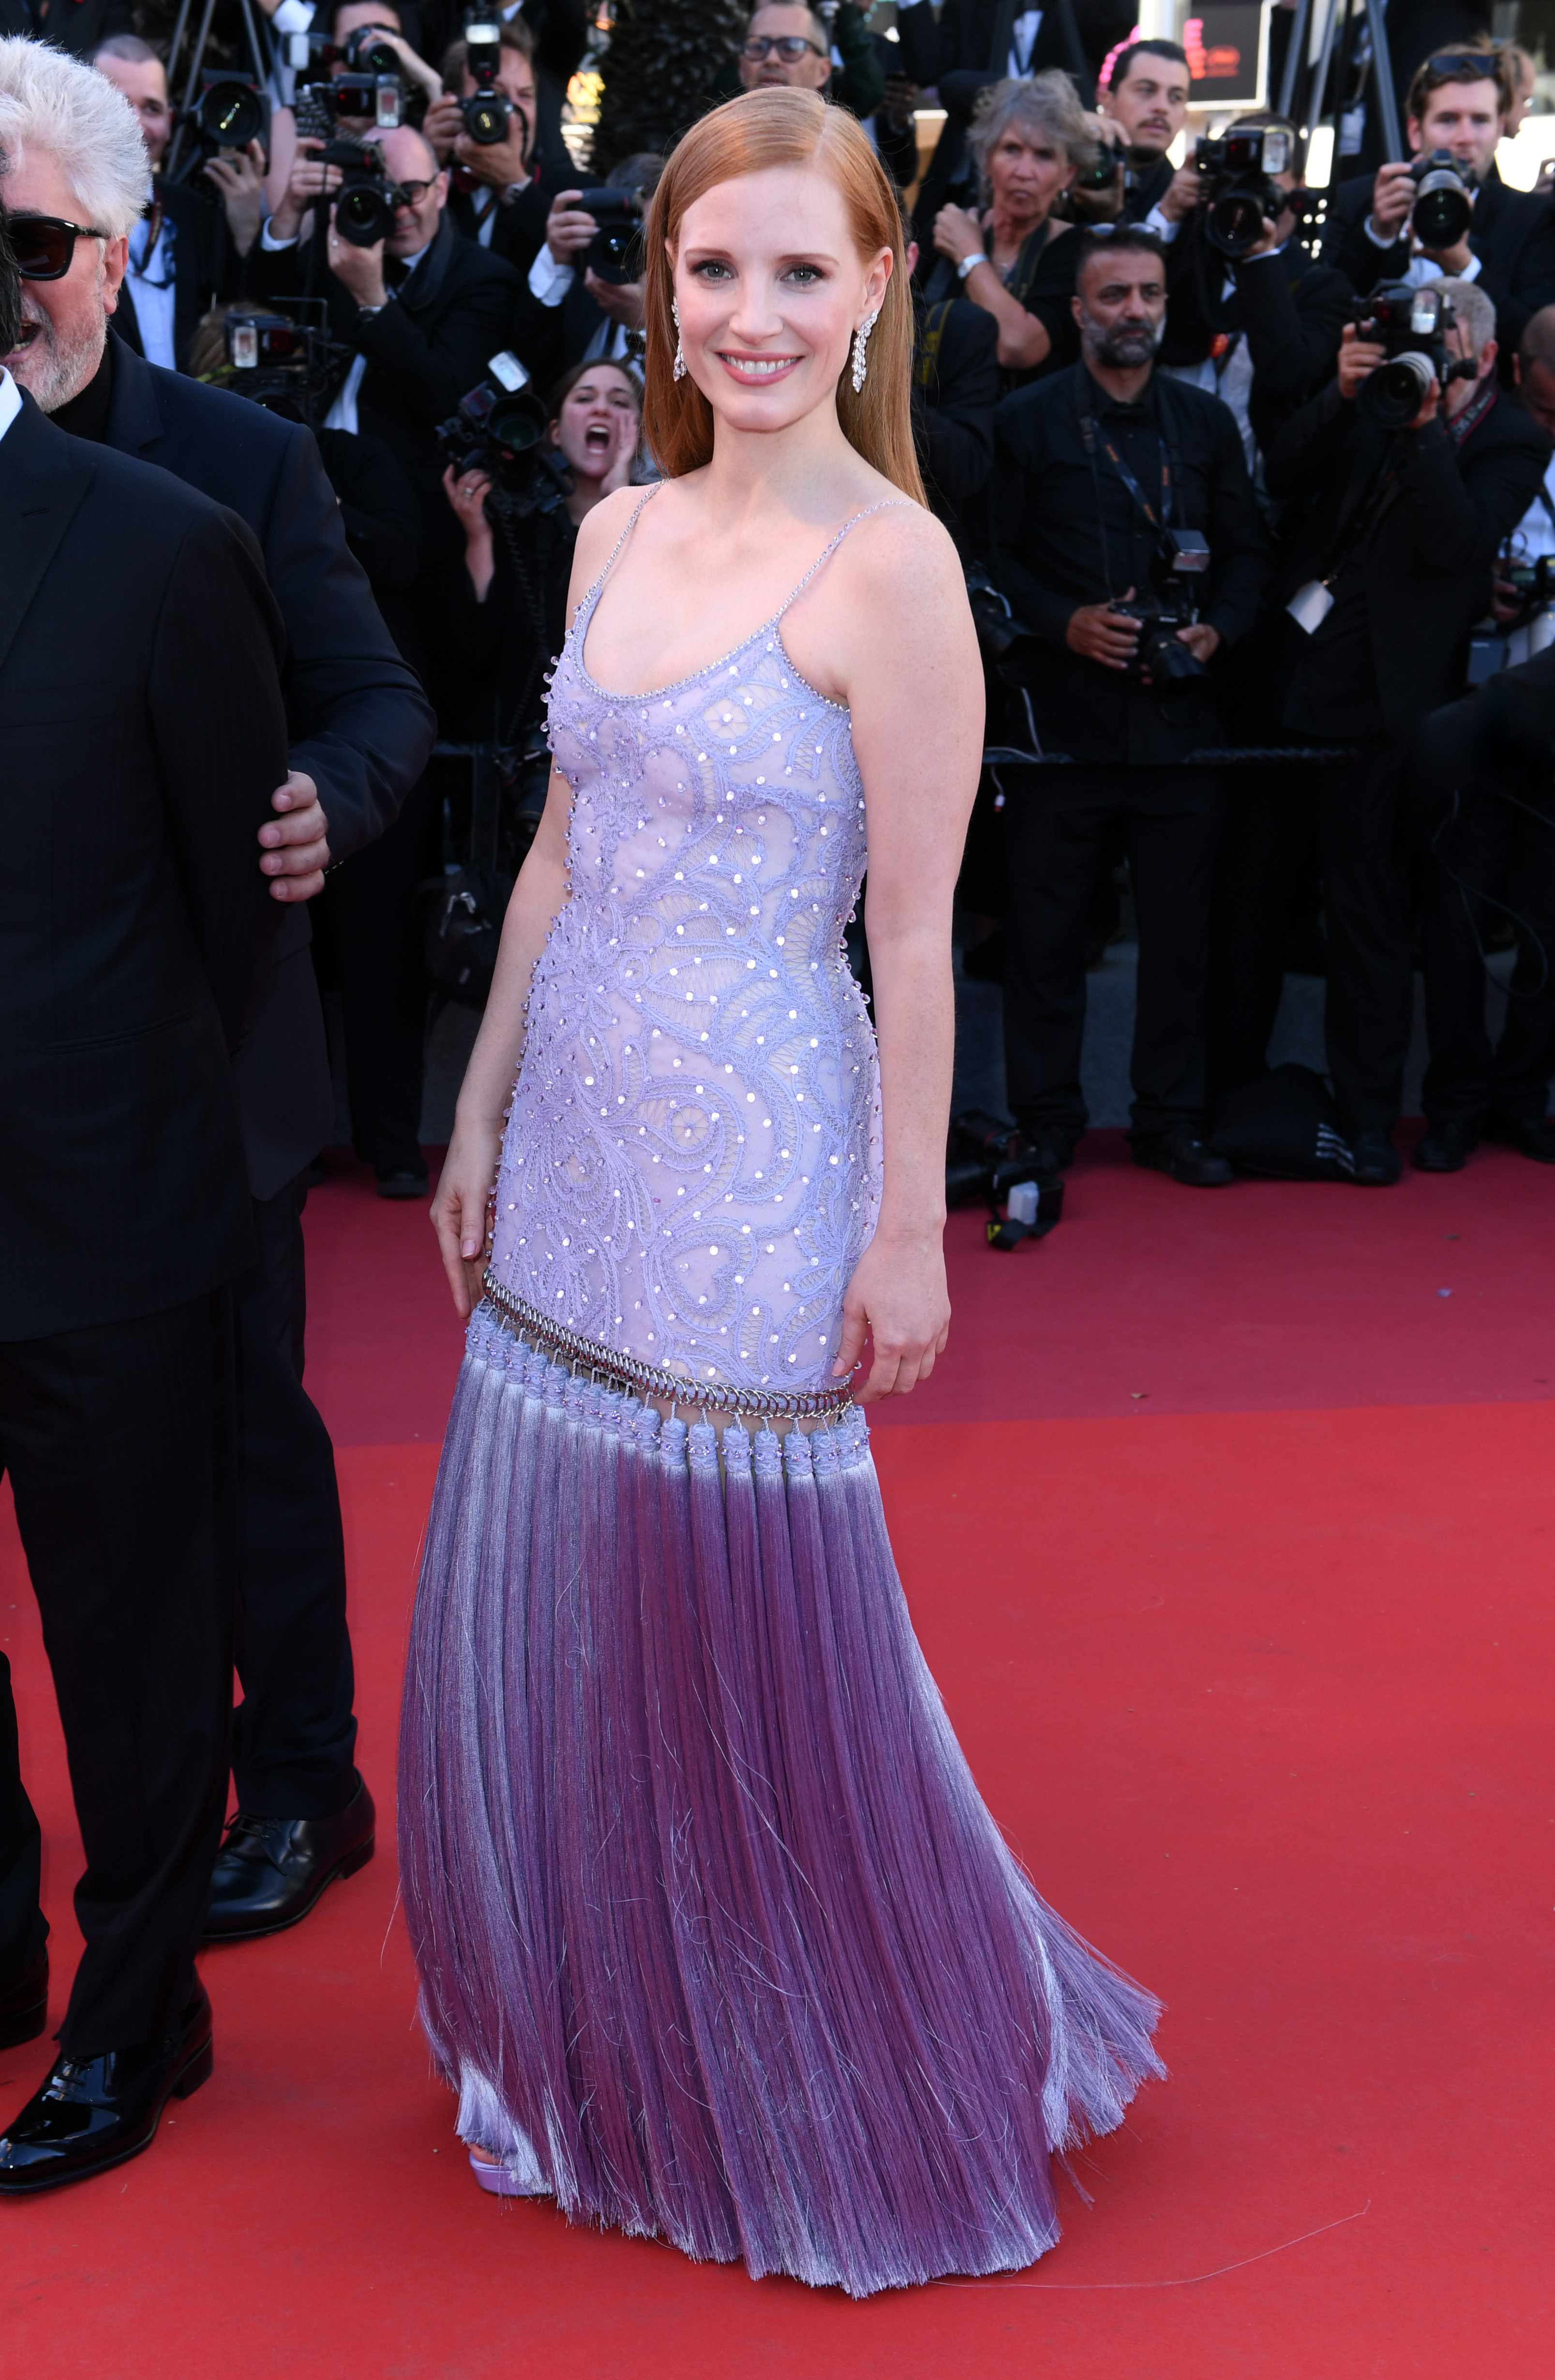 Jessica Chastain'Okja' premiere, 70th Cannes Film Festival, France - 19 May 2017 WEARING GIVENCHY SAME OUTFIT AS CATWALK MODEL KENDALL JENNER *4885101o